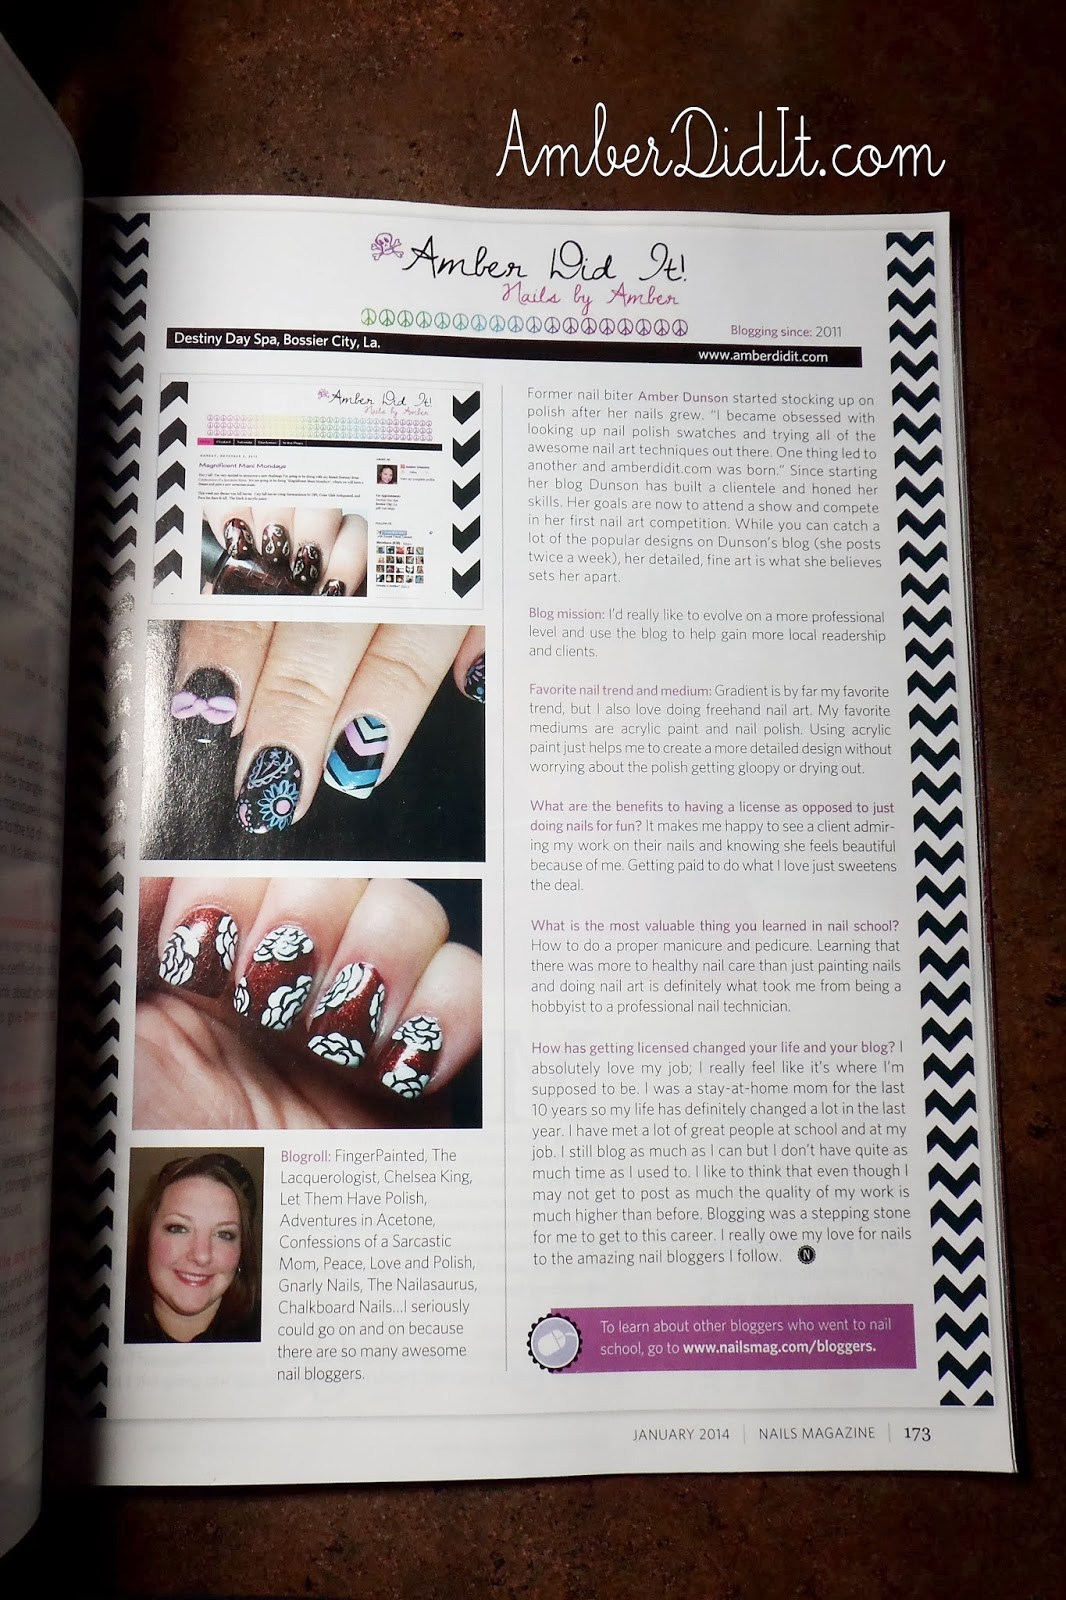 Amber did it!: My Feature in the Jan. issue of Nails Magazine